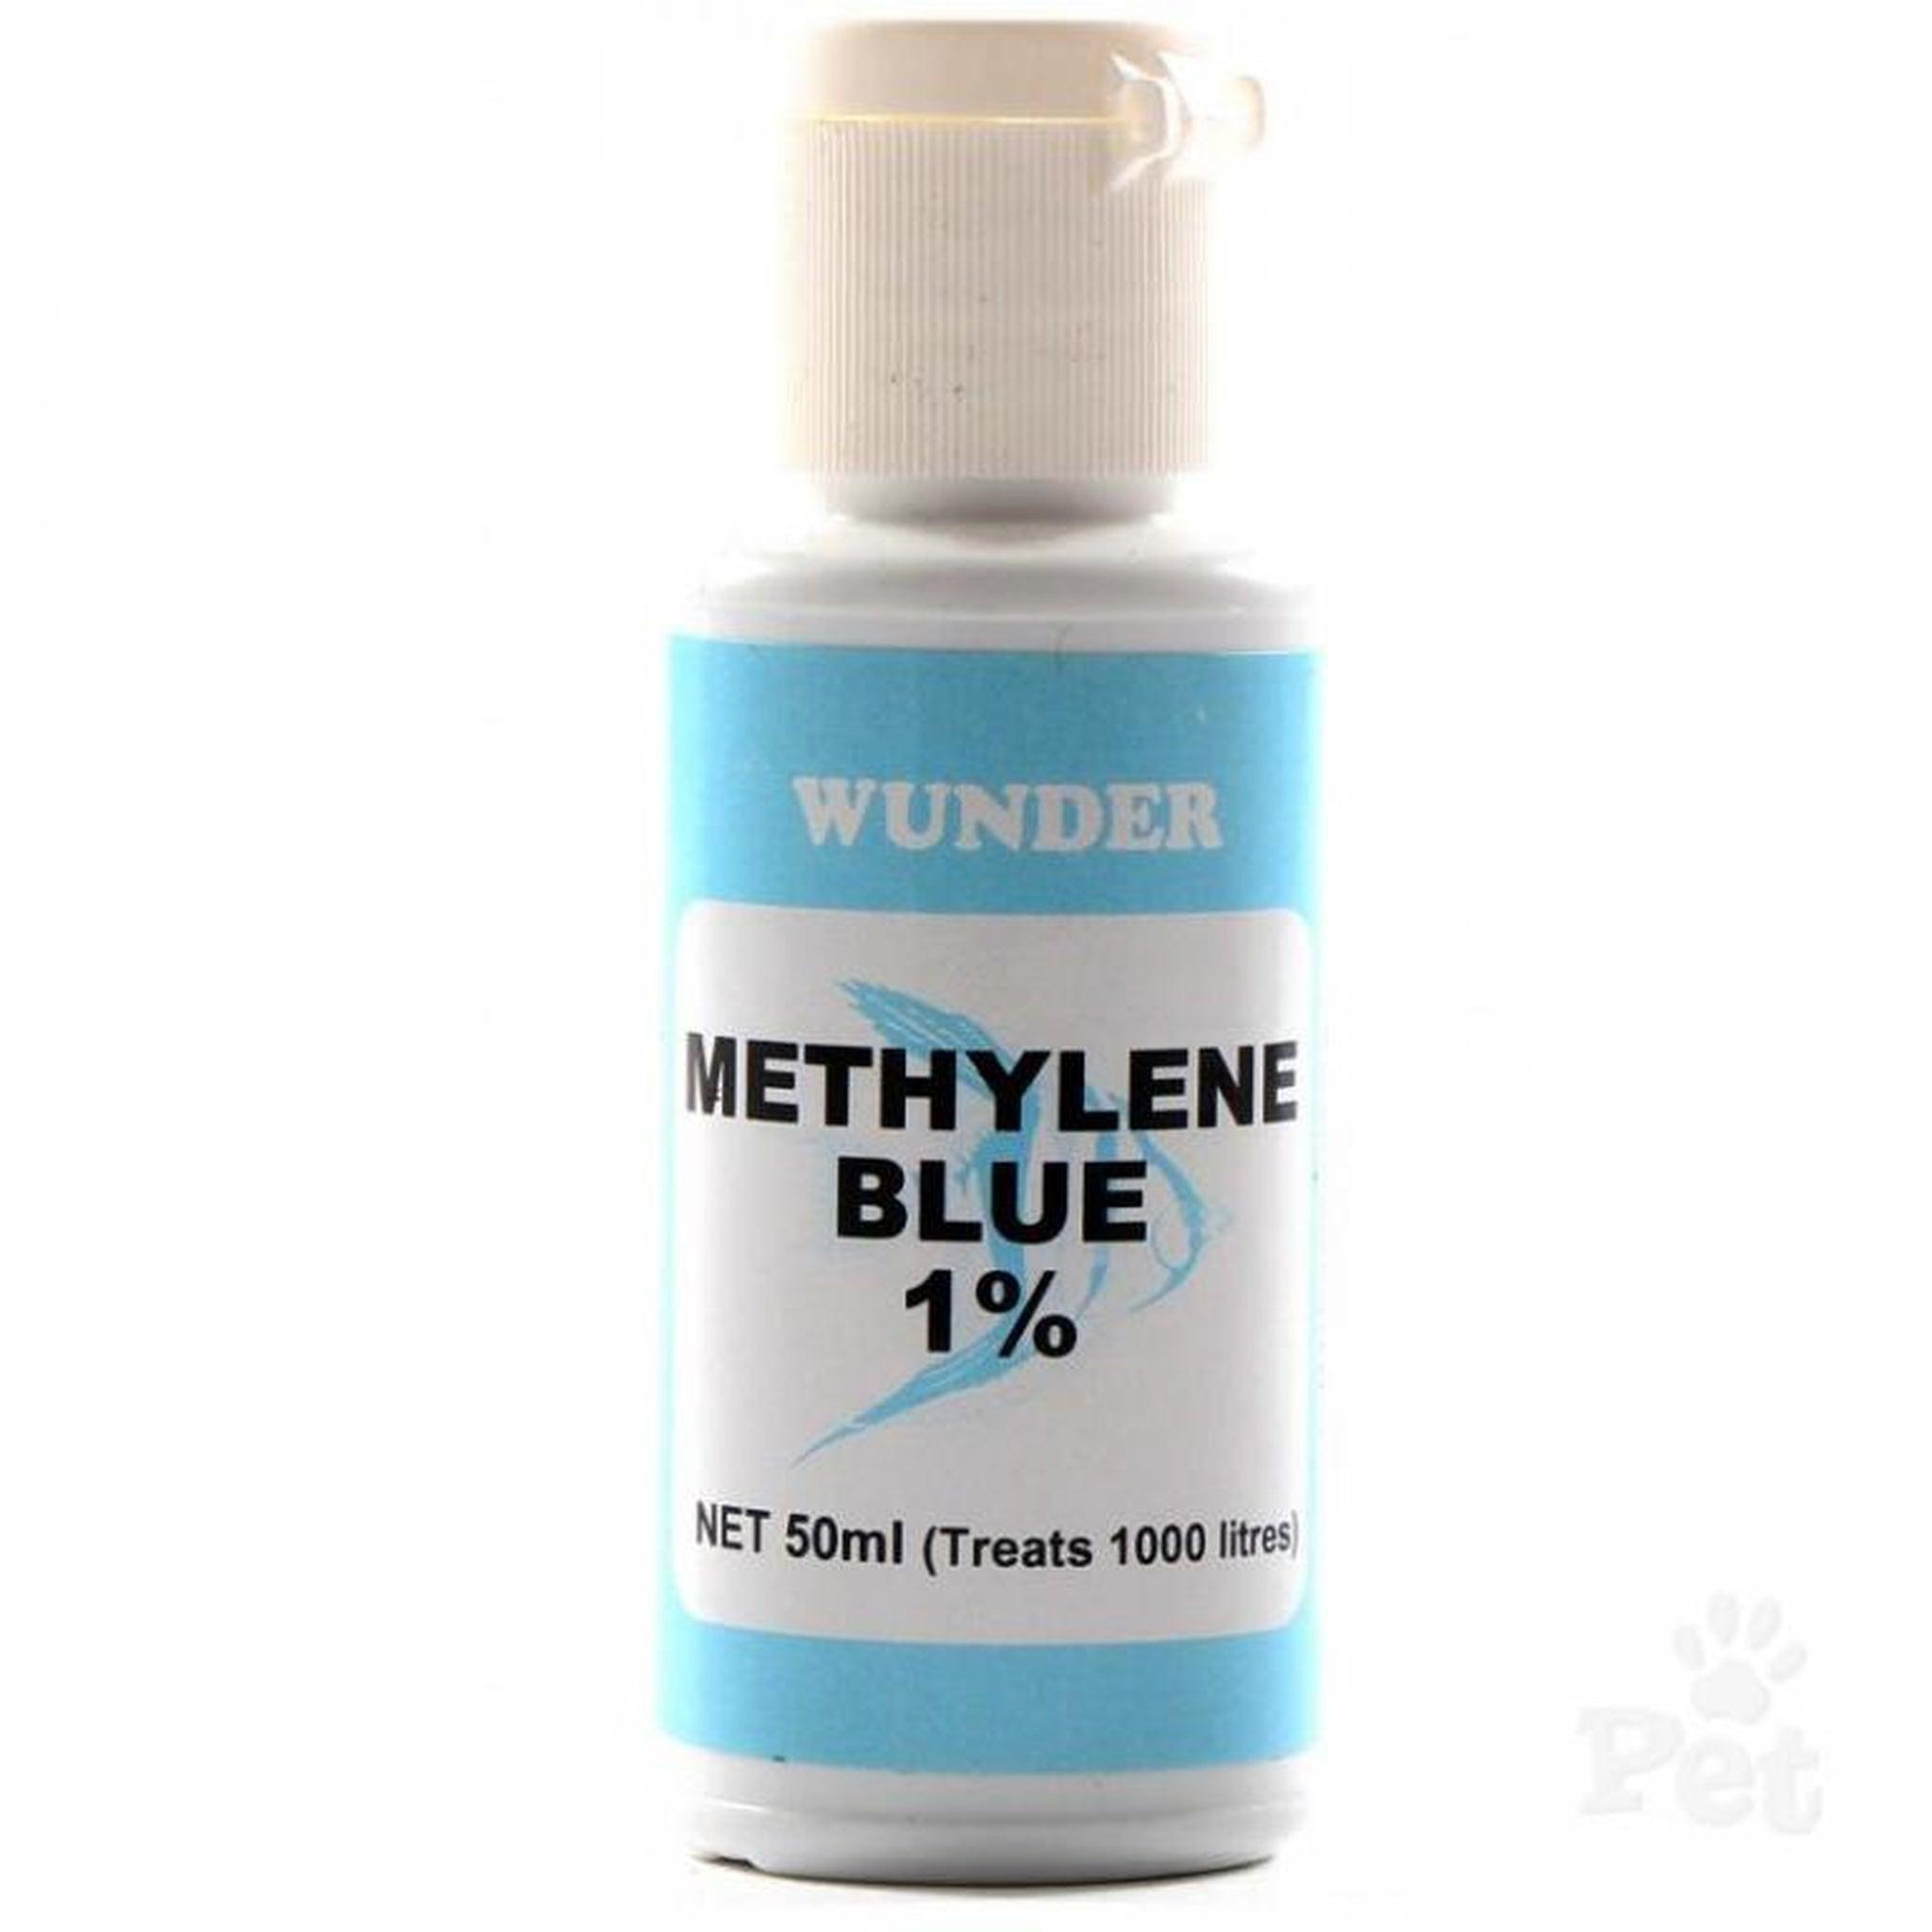 Wunder Methylene Blue 50ml